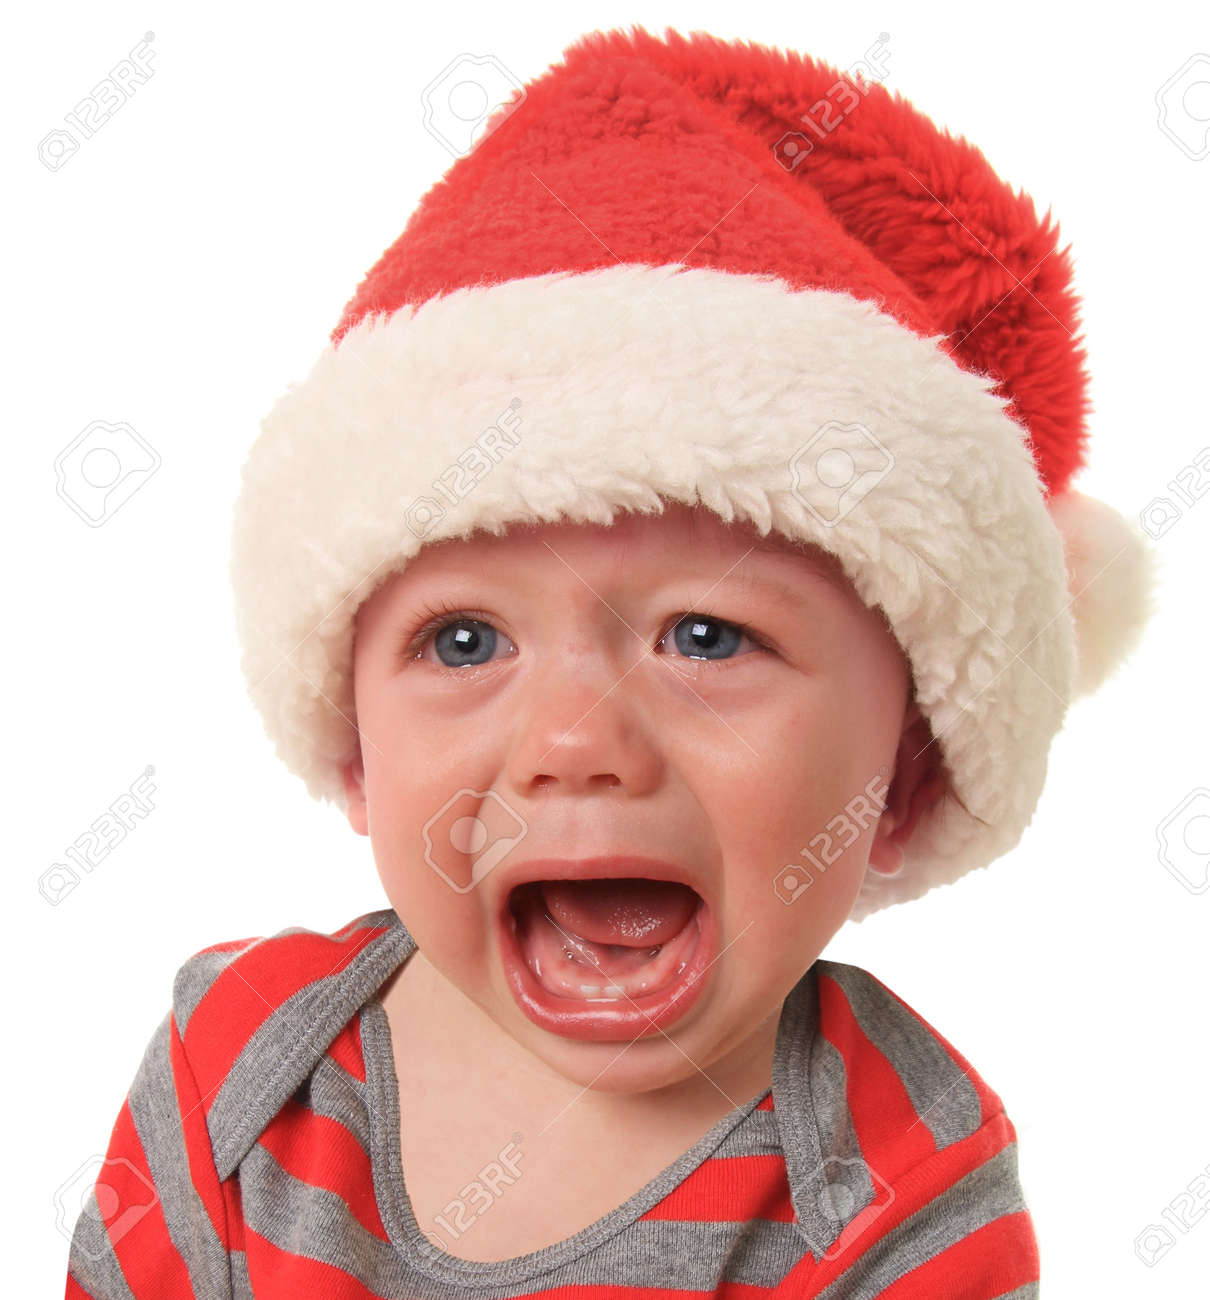 Crying Santa baby boy, 10 months old Stock Photo - 16410847